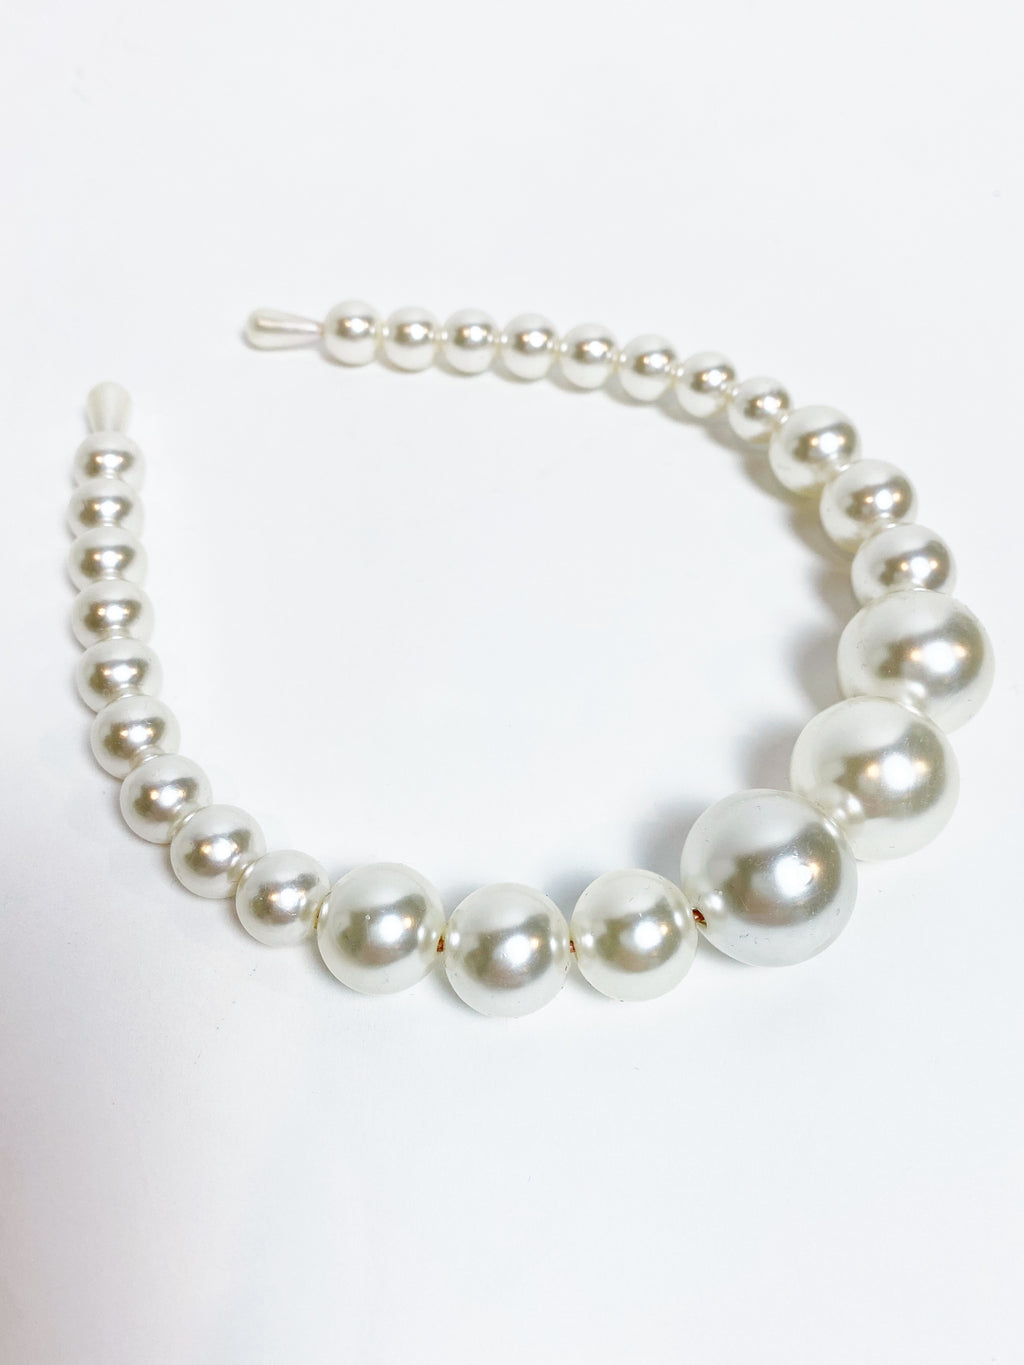 Pearls Just Wanna Have Fun